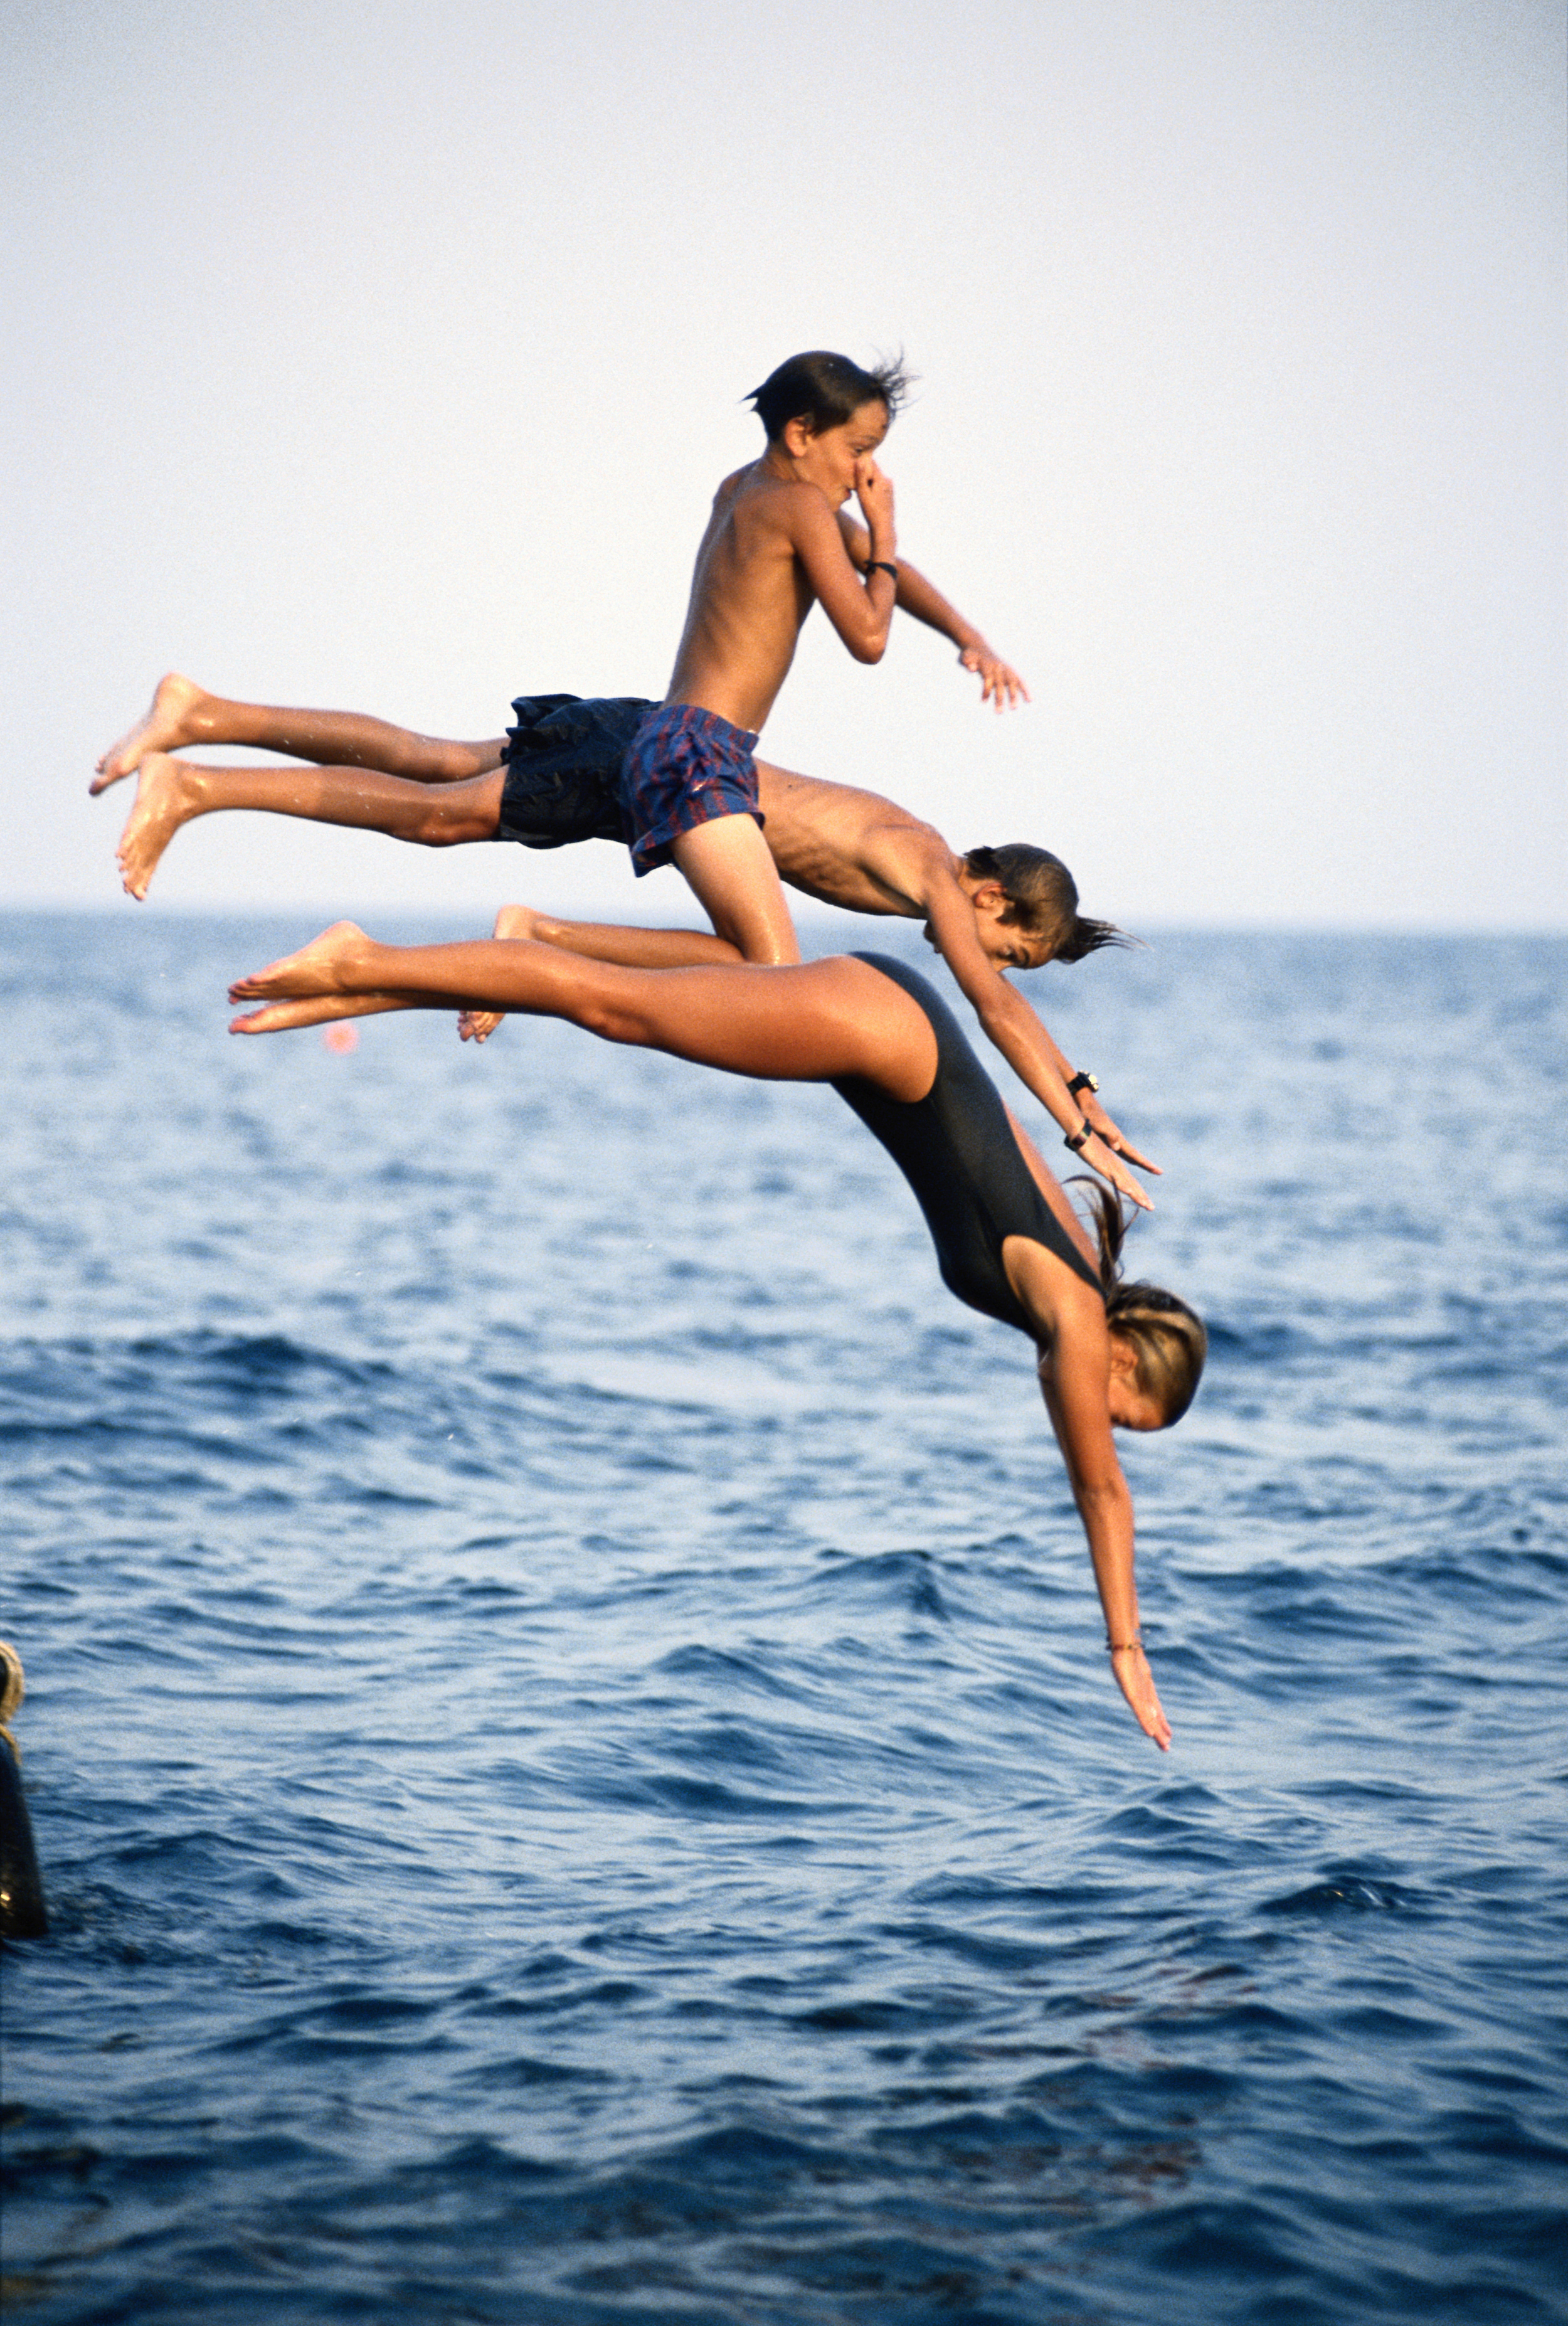 Diving into summer!